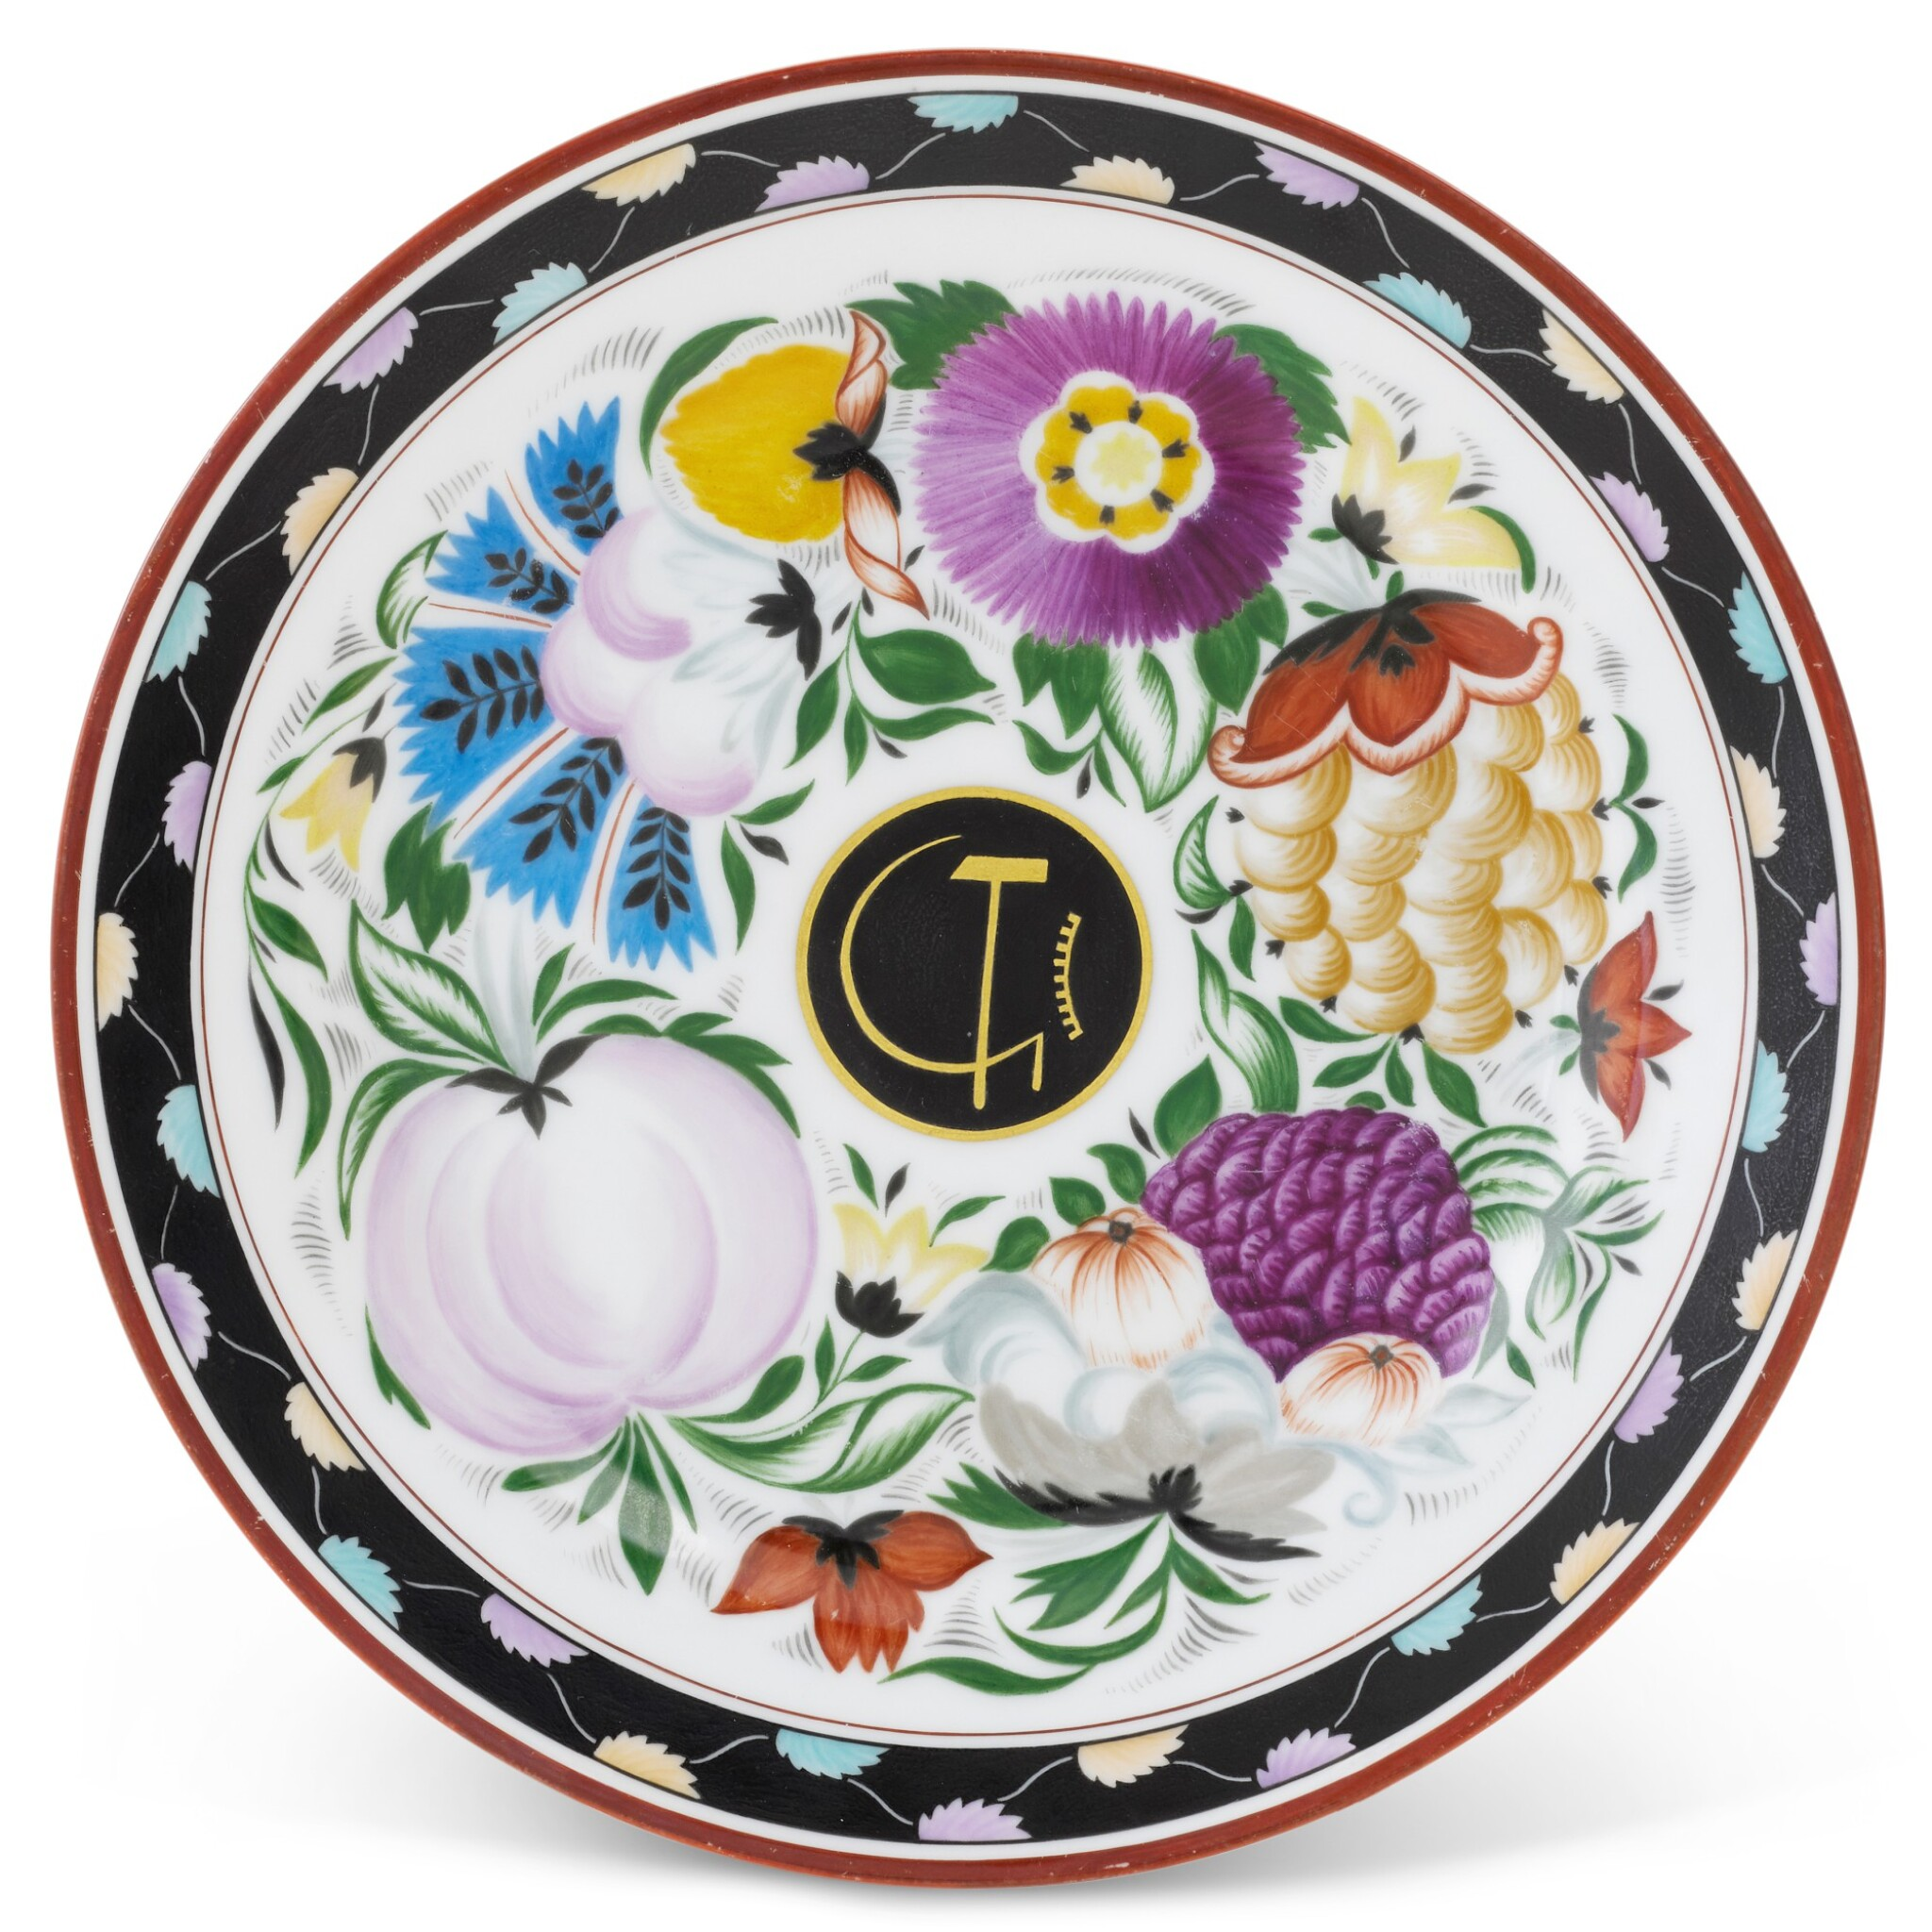 View full screen - View 1 of Lot 154. Flowers and Fruits: A Soviet porcelain propaganda plate, State Porcelain Factory, Petrograd, 1921.